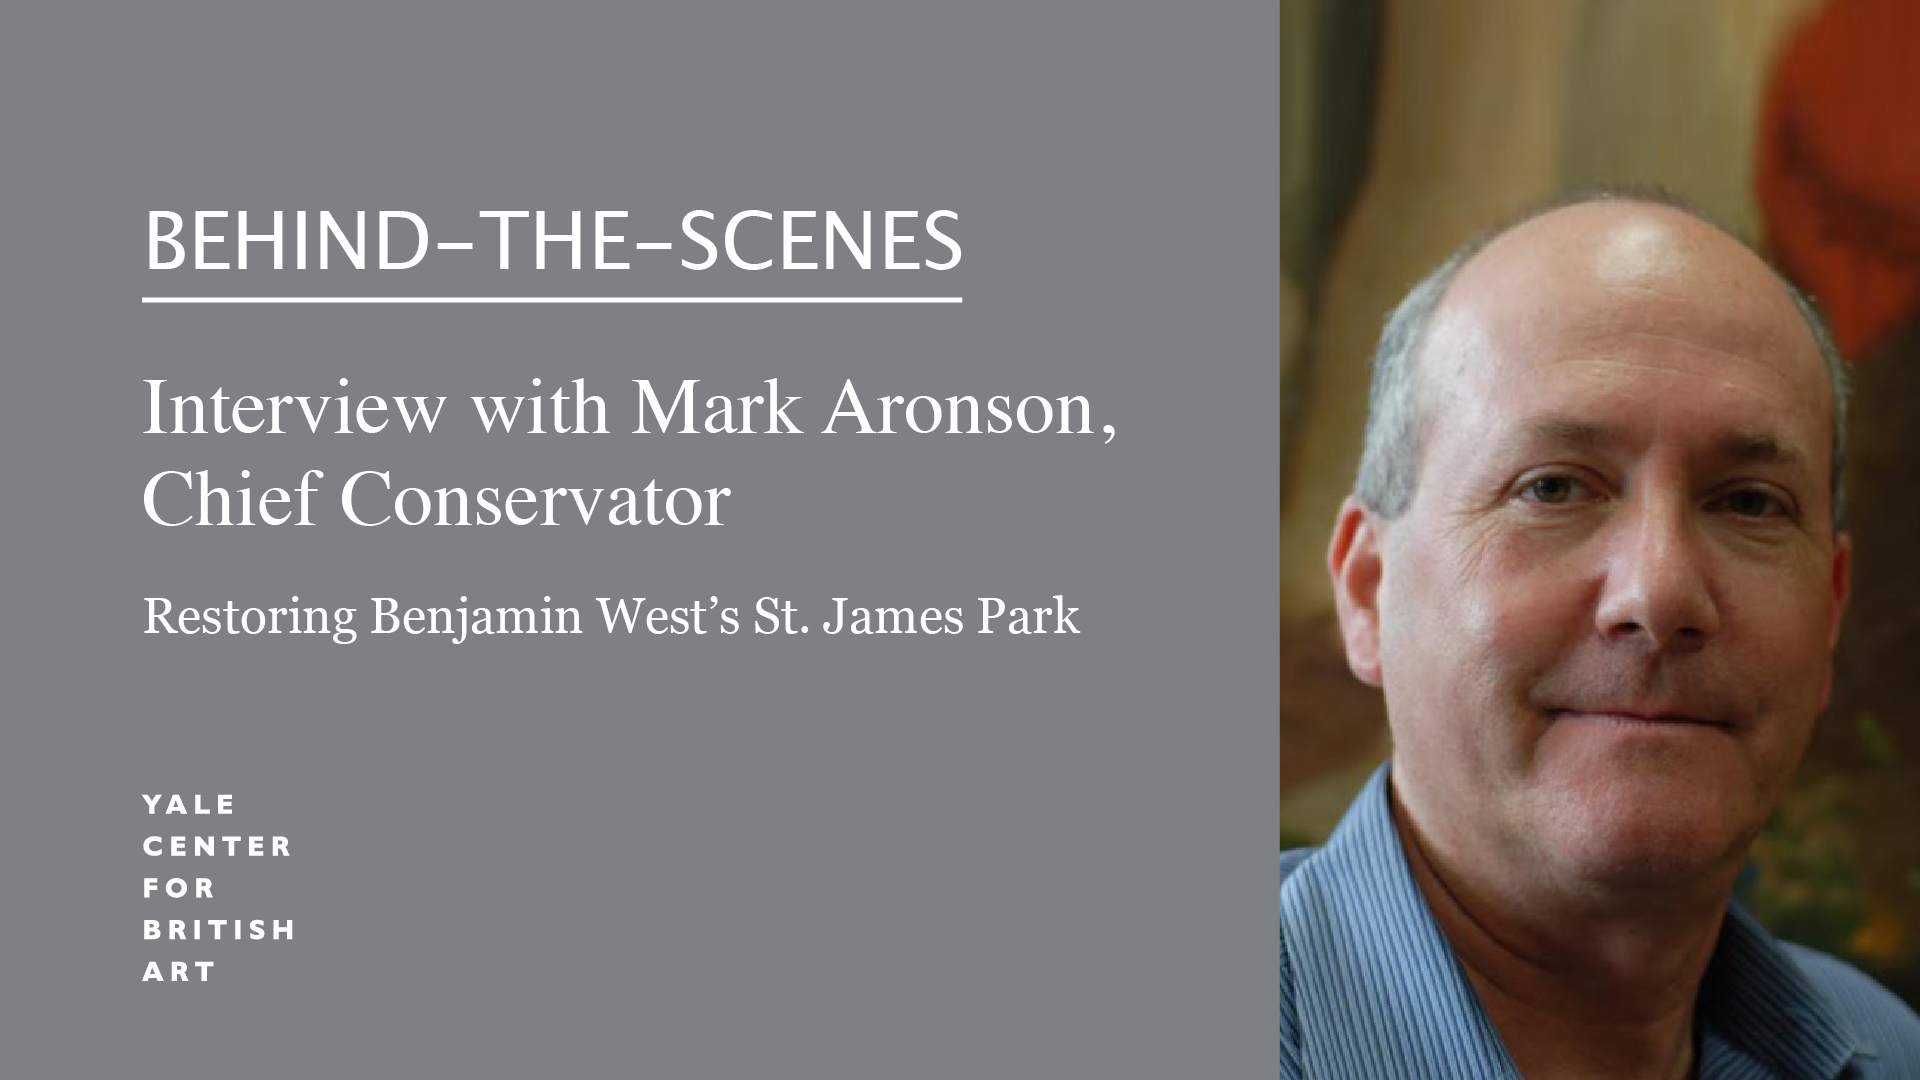 Mark Aronson, Chief Conservator at the Center